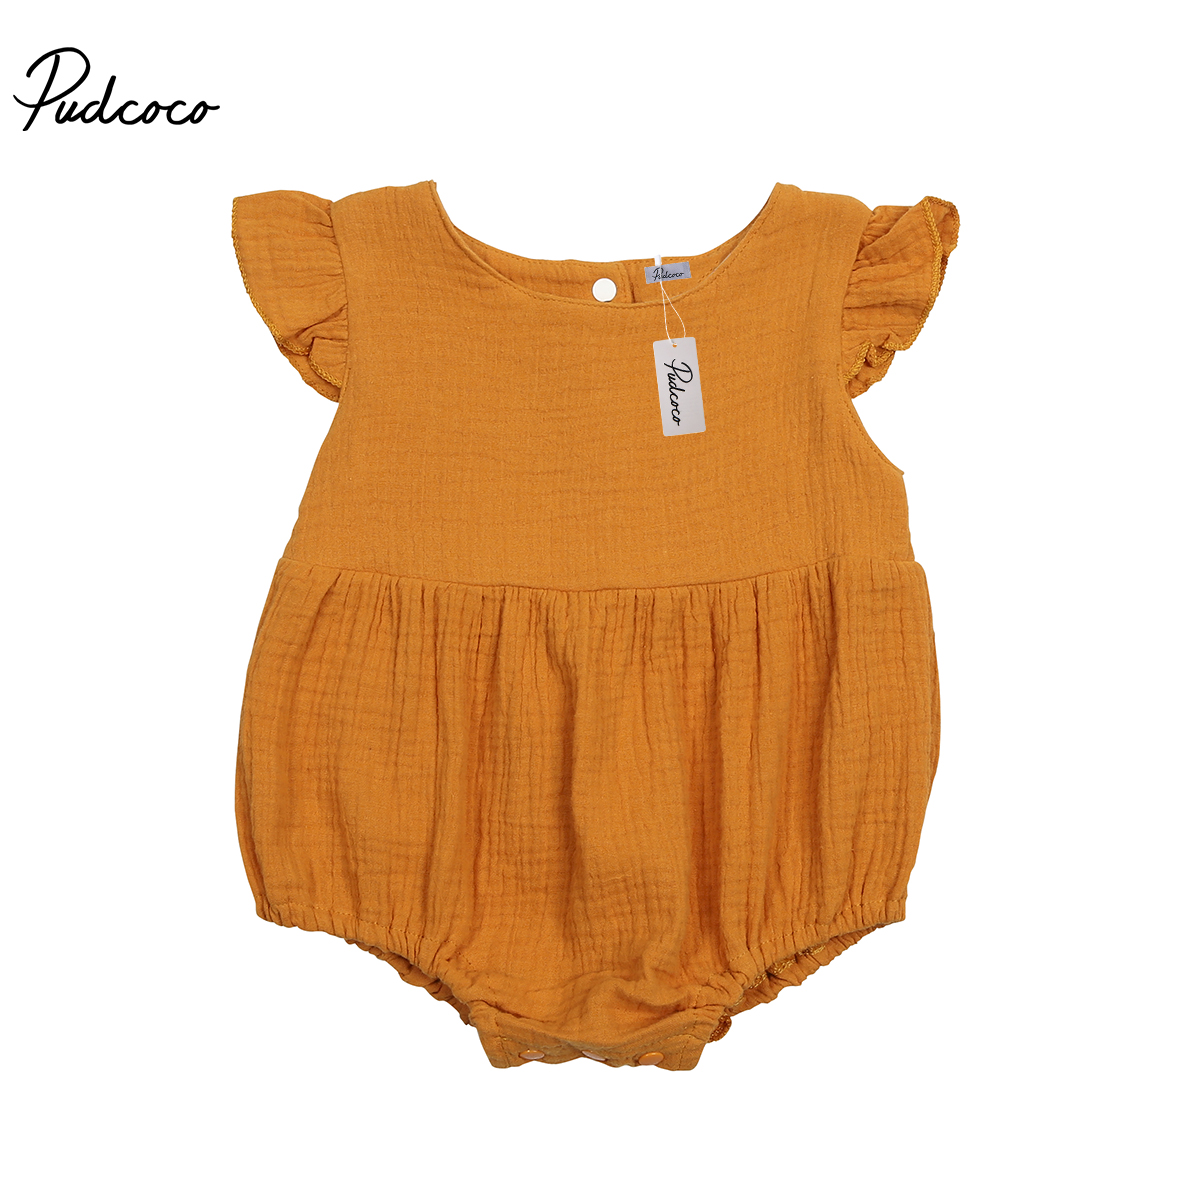 Pudcoco Cotton Baby Rompers Vintage Short Sleeve Baby Girl R